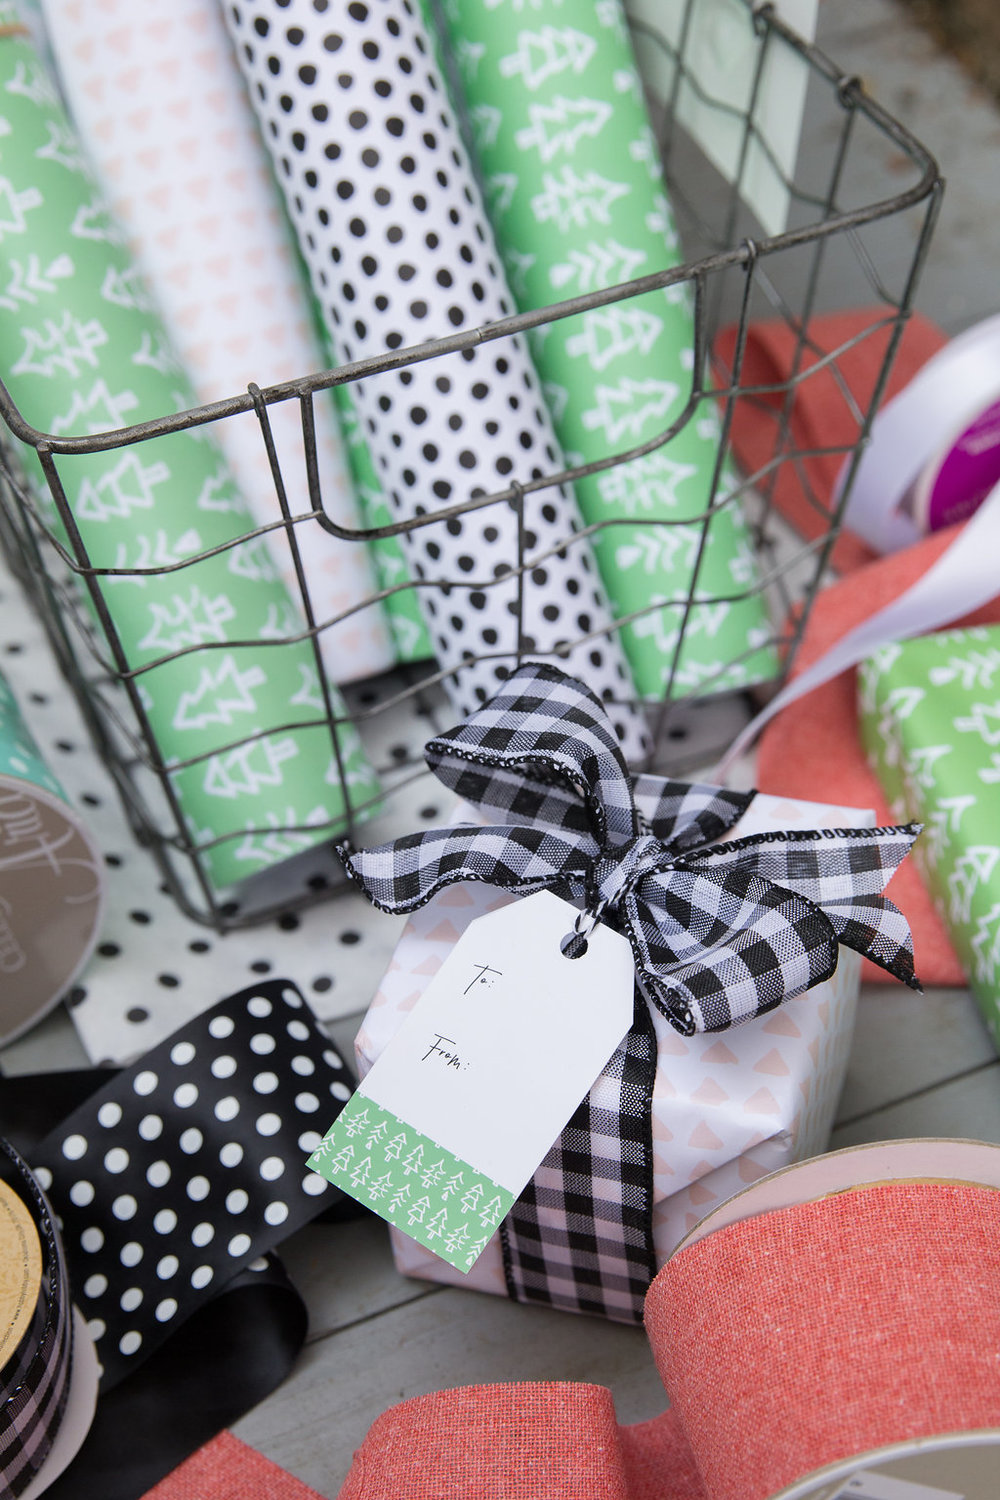 Check out some fun and unique Christmas gift wrap ideas in the blog below!